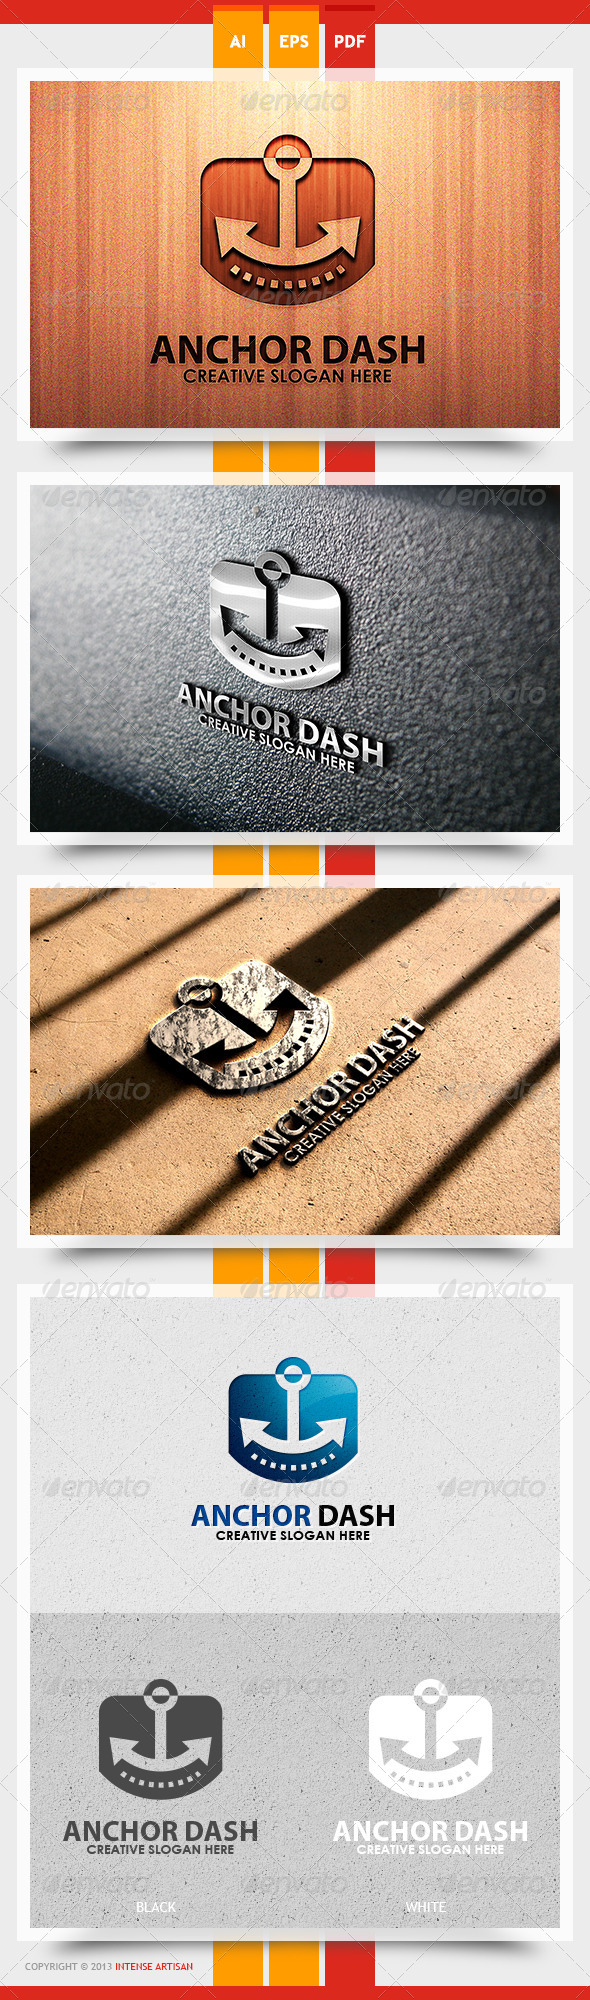 Anchor Dash Logo Template - Objects Logo Templates